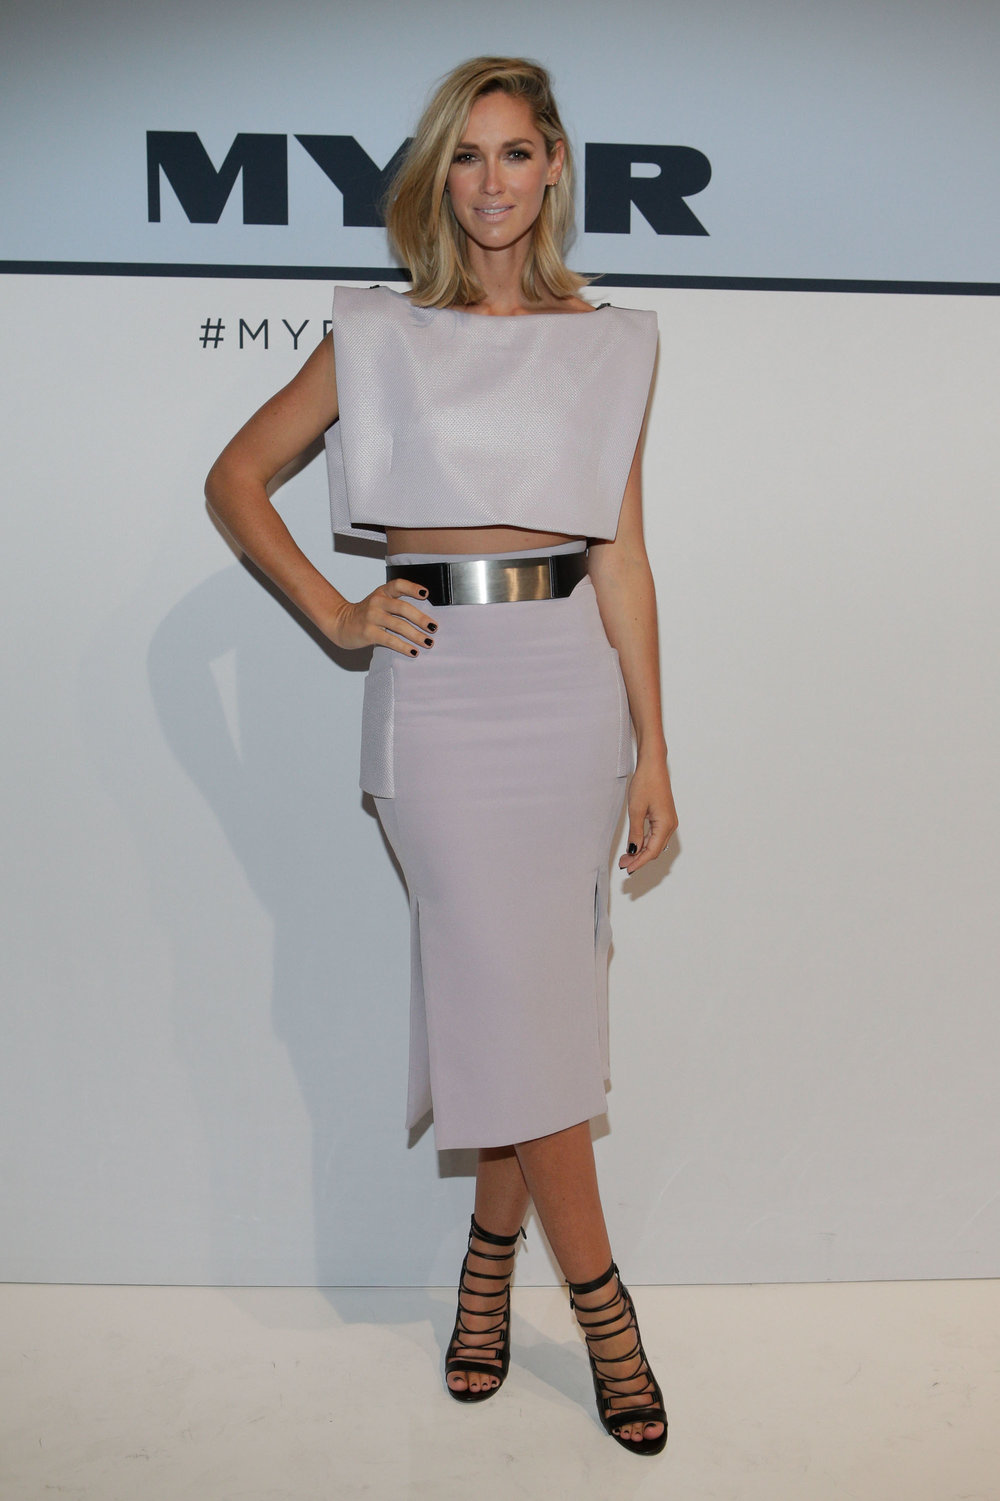 myer-spring-summer-2015-nikki-phillips.jpg